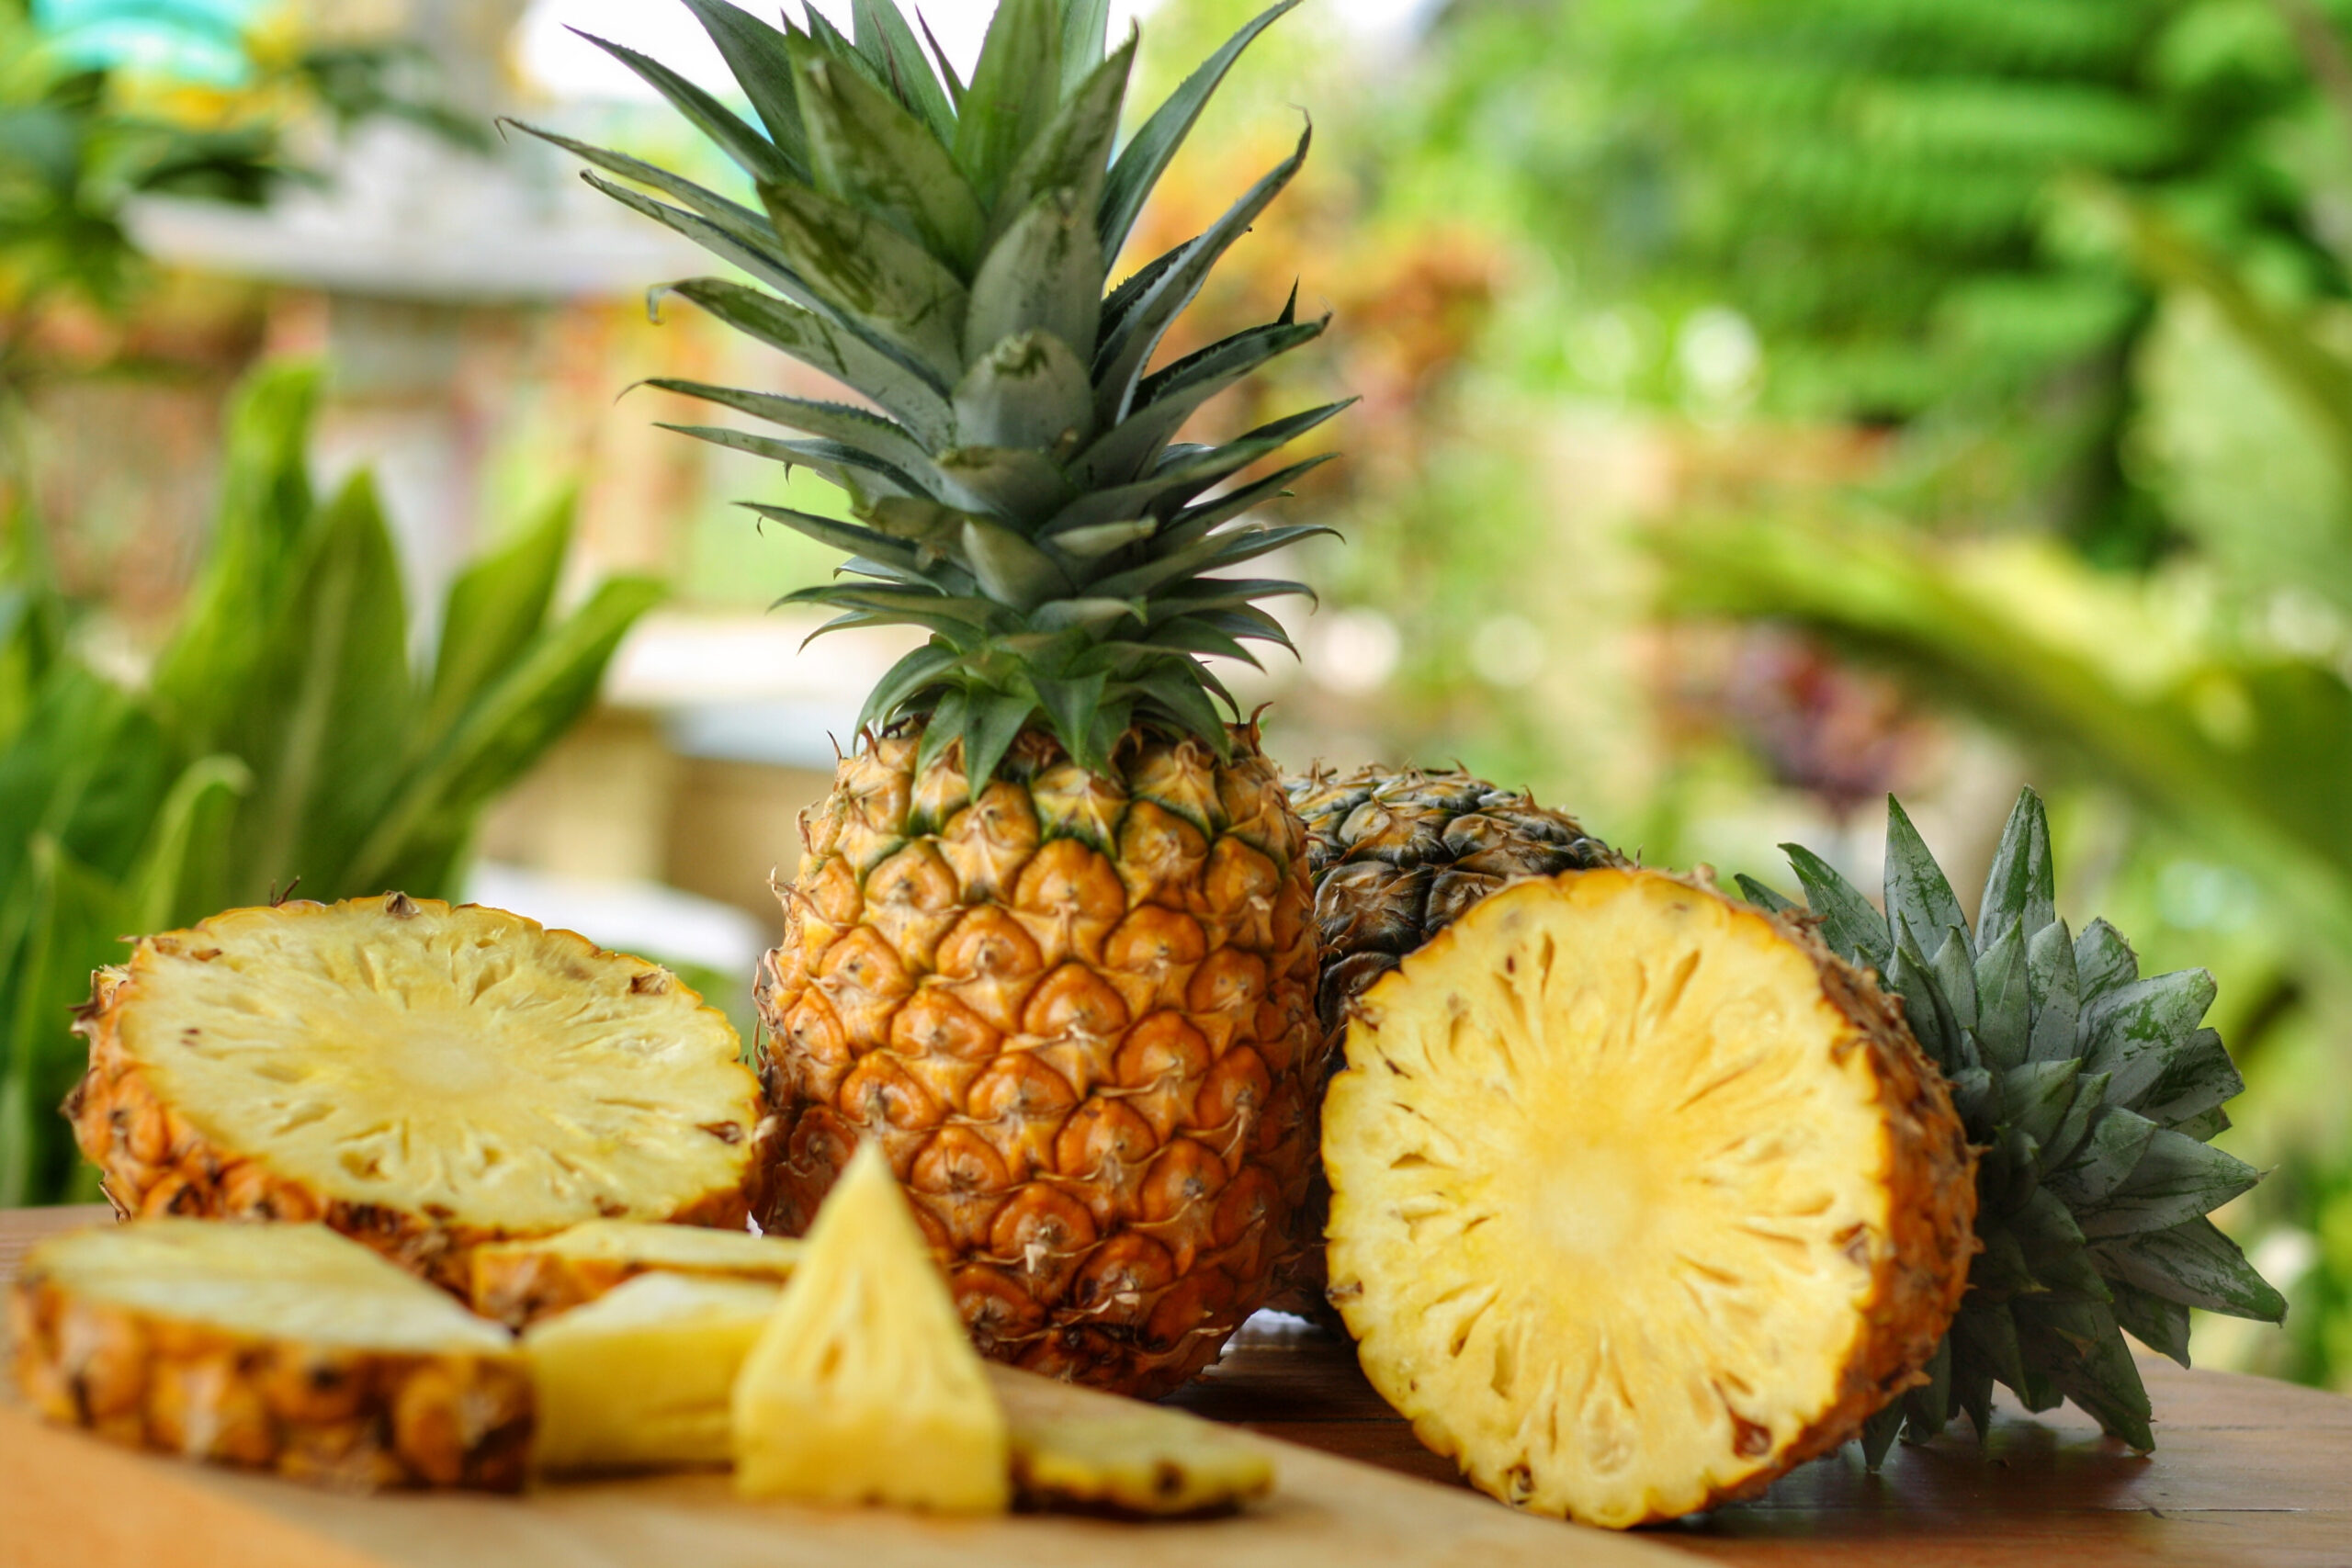 Whole,And,Pieces,Of,Pineapple(ananas,Comosus),On,Wooden,Table,With